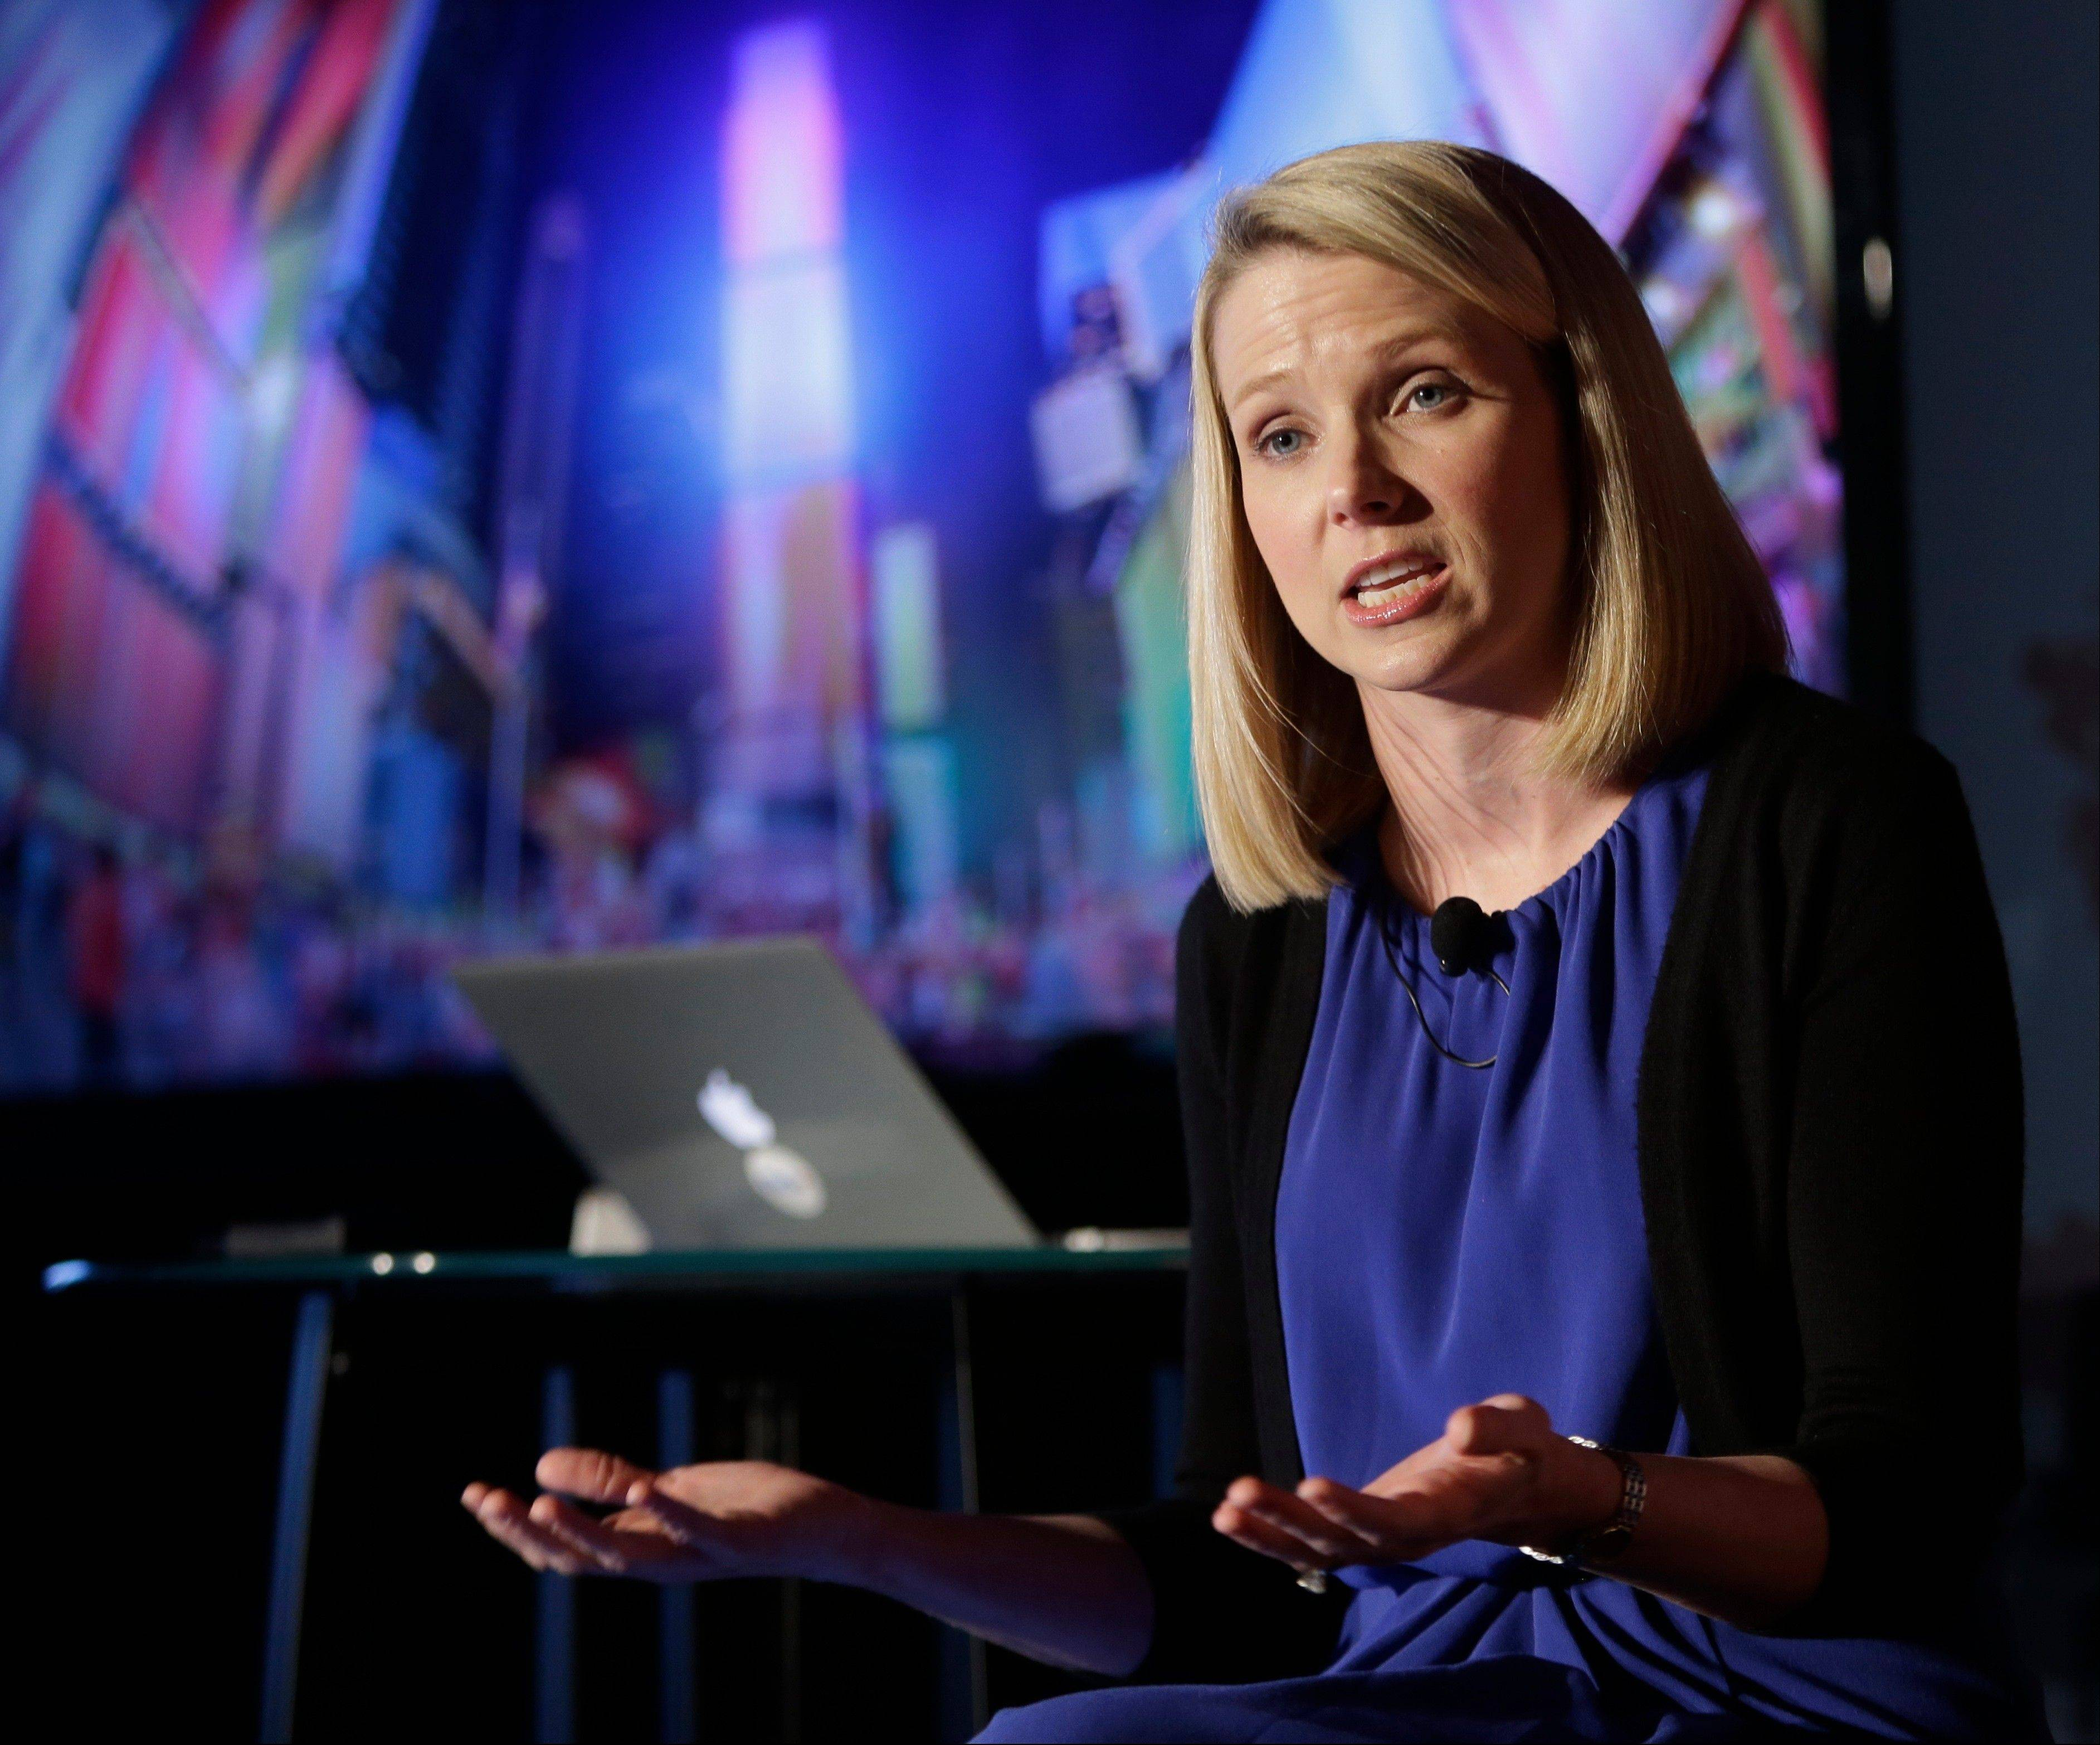 CEO Marissa Mayer has played a key role in turning around Yahoo.